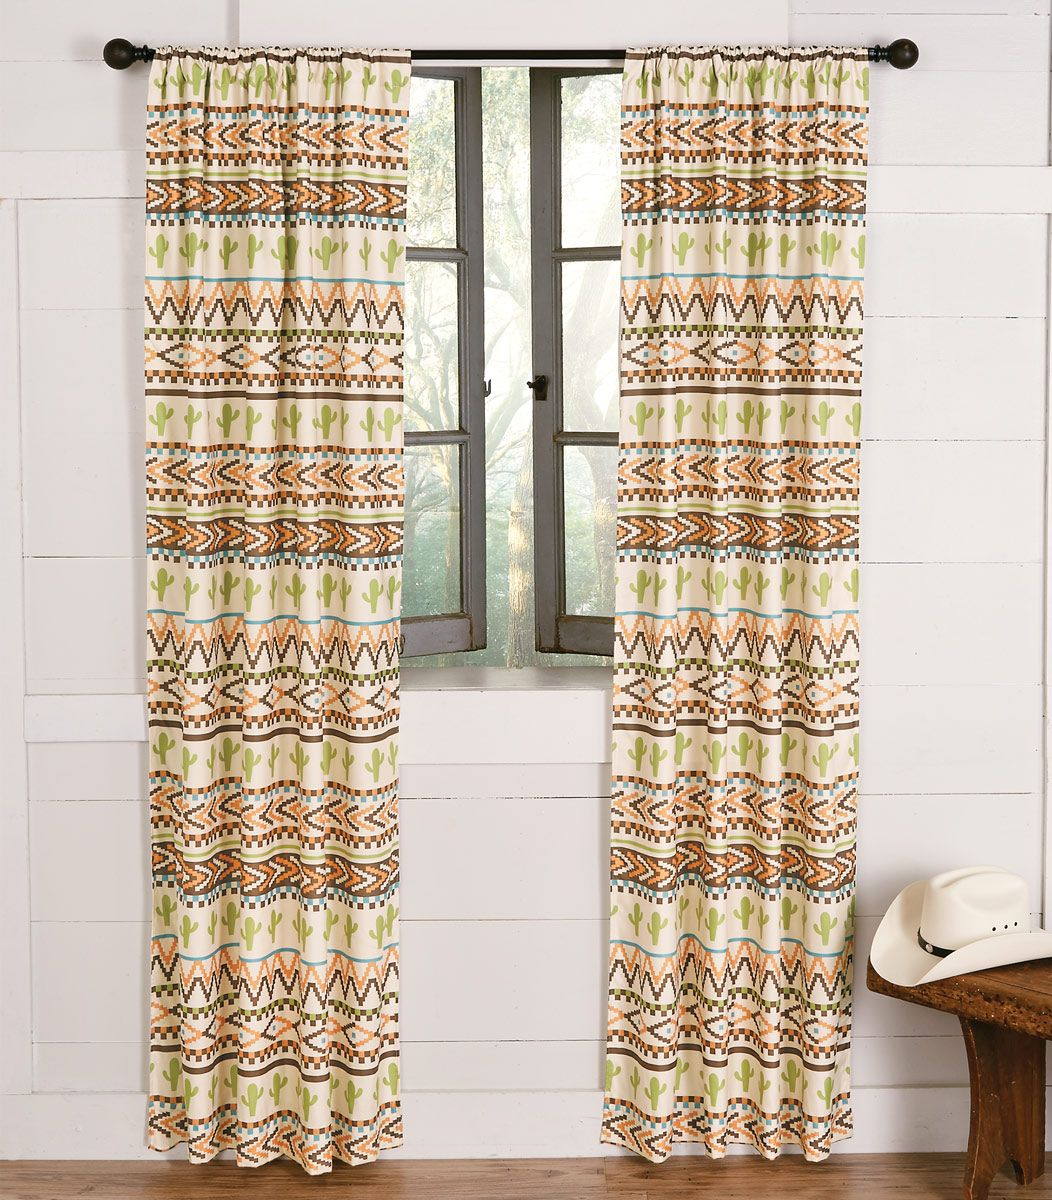 Joshua Stripe Cactus Drapes - CLEARANCE